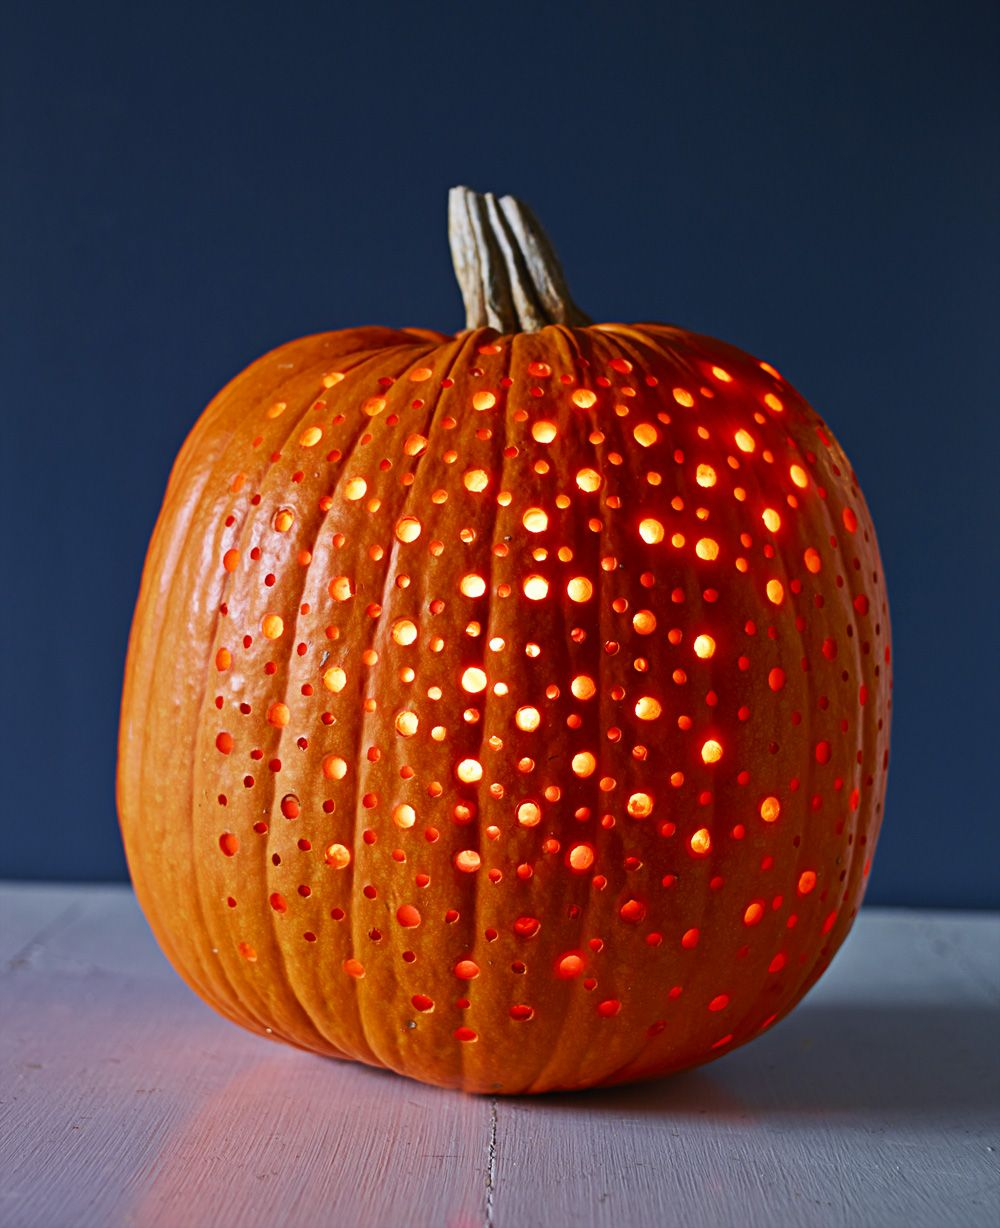 25+ easy pumpkin carving ideas for halloween 2018 - cool pumpkin